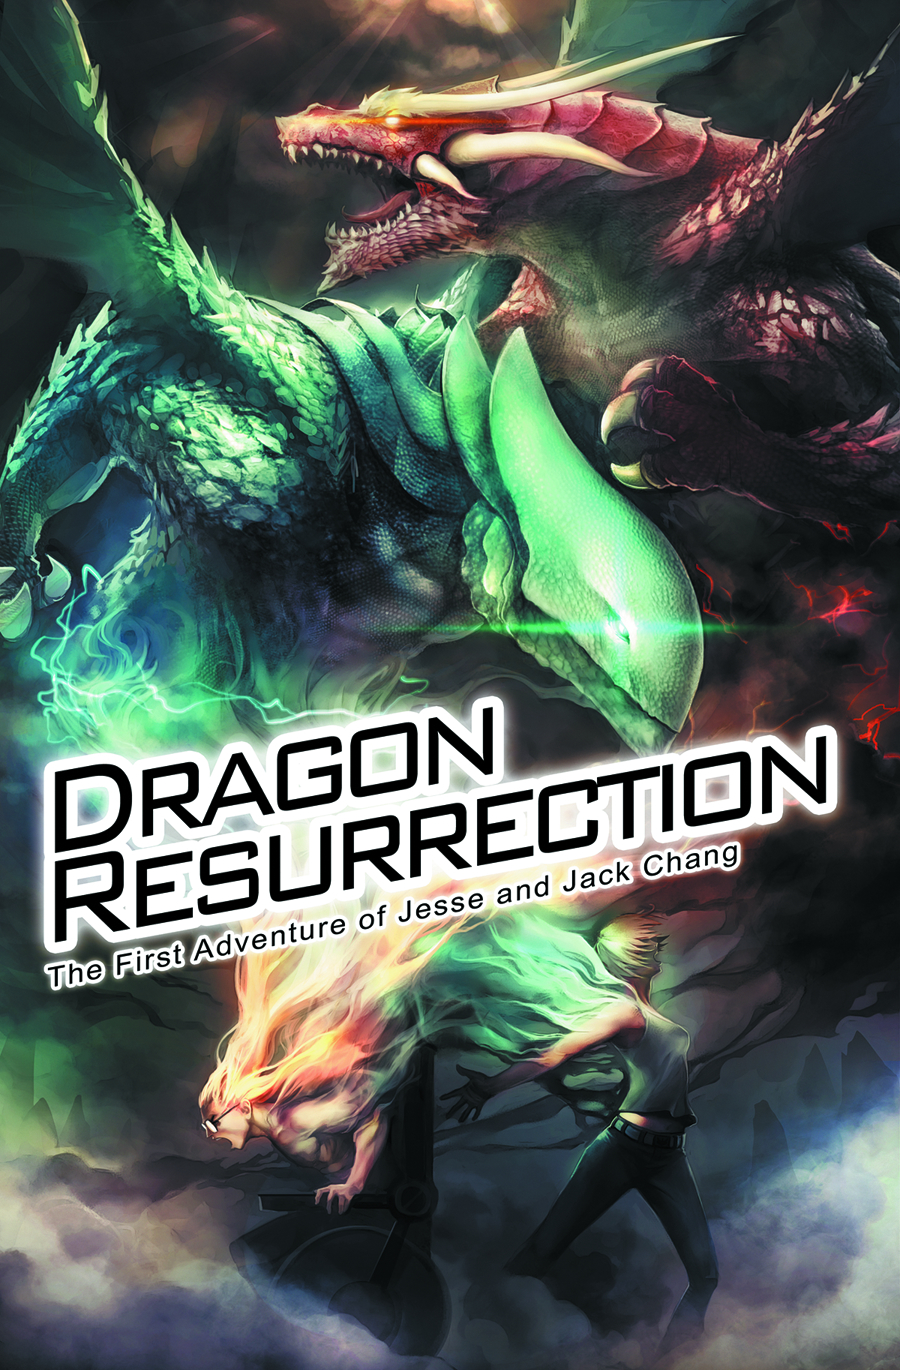 DRAGON RESURRECTION GN